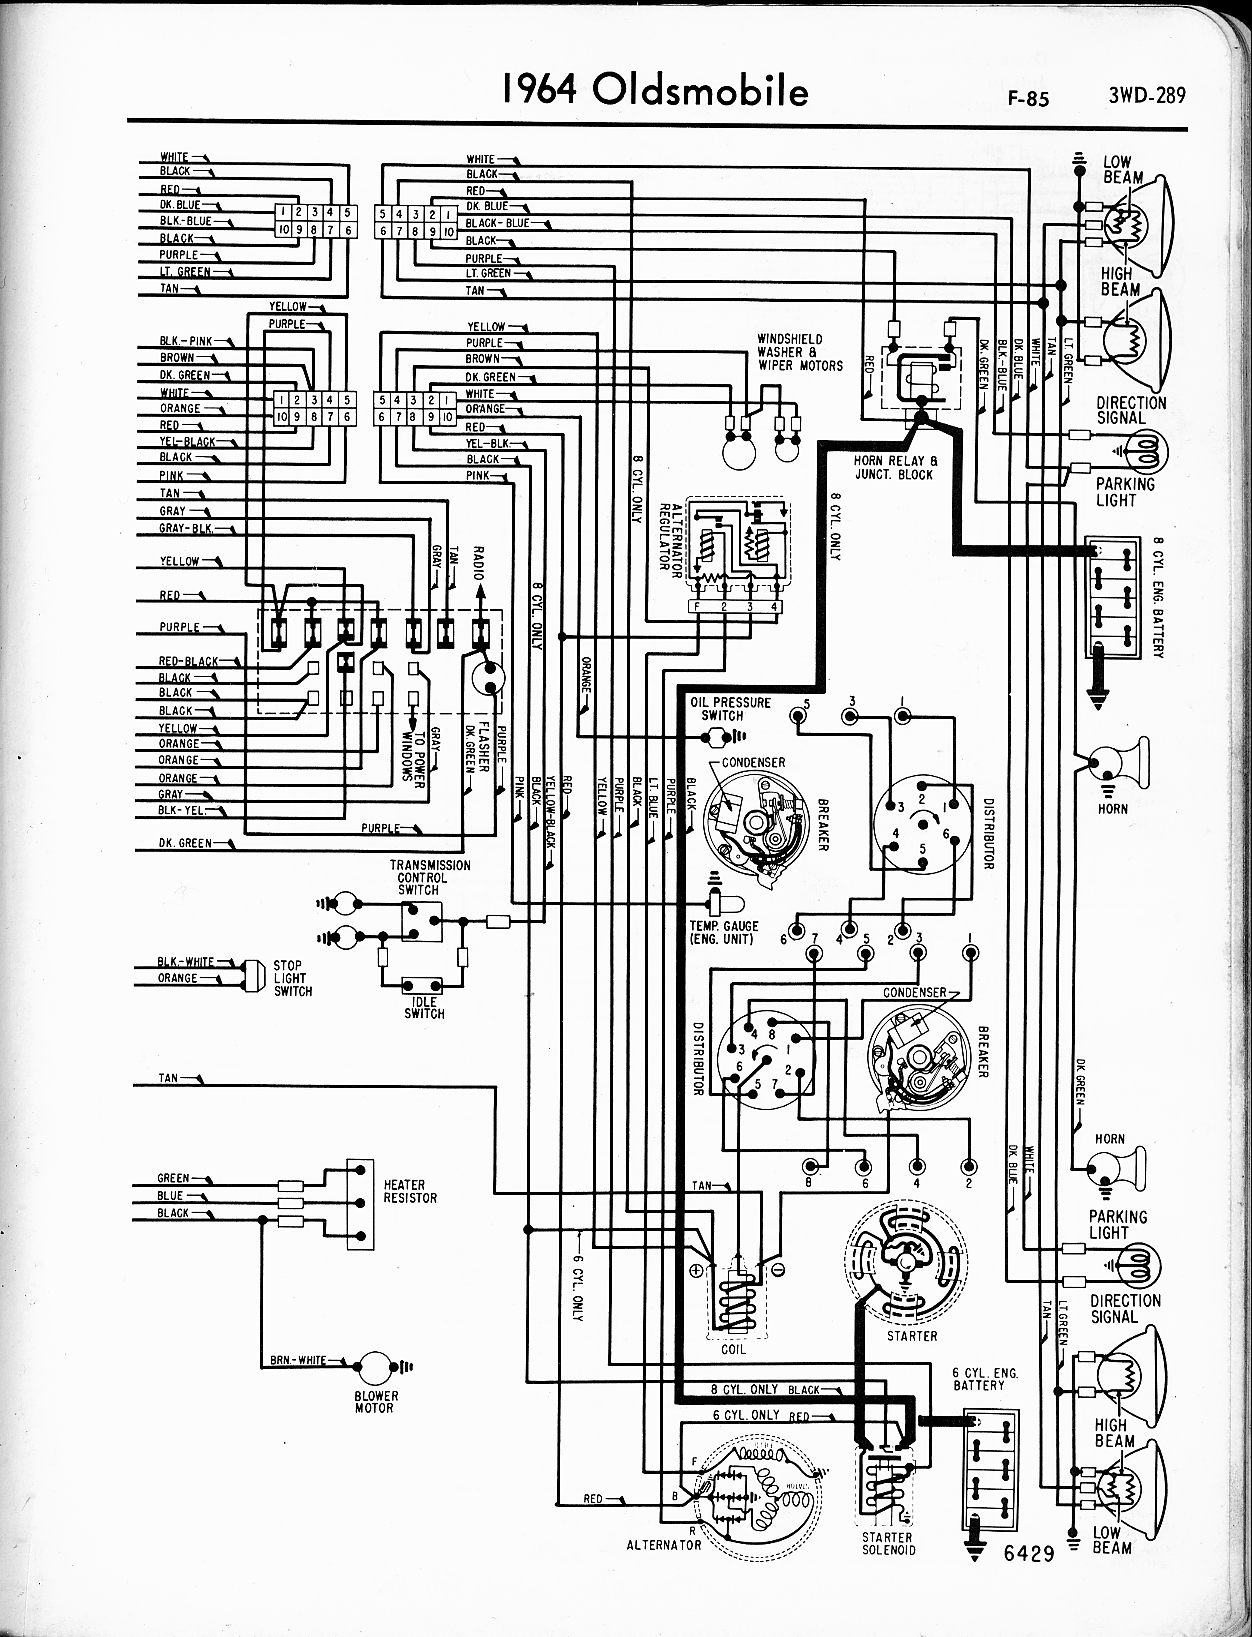 MWire5765-289 Jeep Liberty Ground Wiring Diagrams on ford econoline van wiring diagram, jeep liberty fan belt, jeep liberty ignition wiring, jeep liberty distributor, 2008 jeep wiring diagram, jeep wrangler wiring diagram, 2004 jeep wiring diagram, isuzu hombre wiring diagram, jeep liberty shift solenoid, jeep liberty gas gauge, kia forte wiring diagram, jeep liberty clutch, jeep liberty no crank, volkswagen golf wiring diagram, mercury milan wiring diagram, jeep liberty relay location, lexus gx wiring diagram, jeep liberty engine swap, subaru baja wiring diagram, saturn aura wiring diagram,